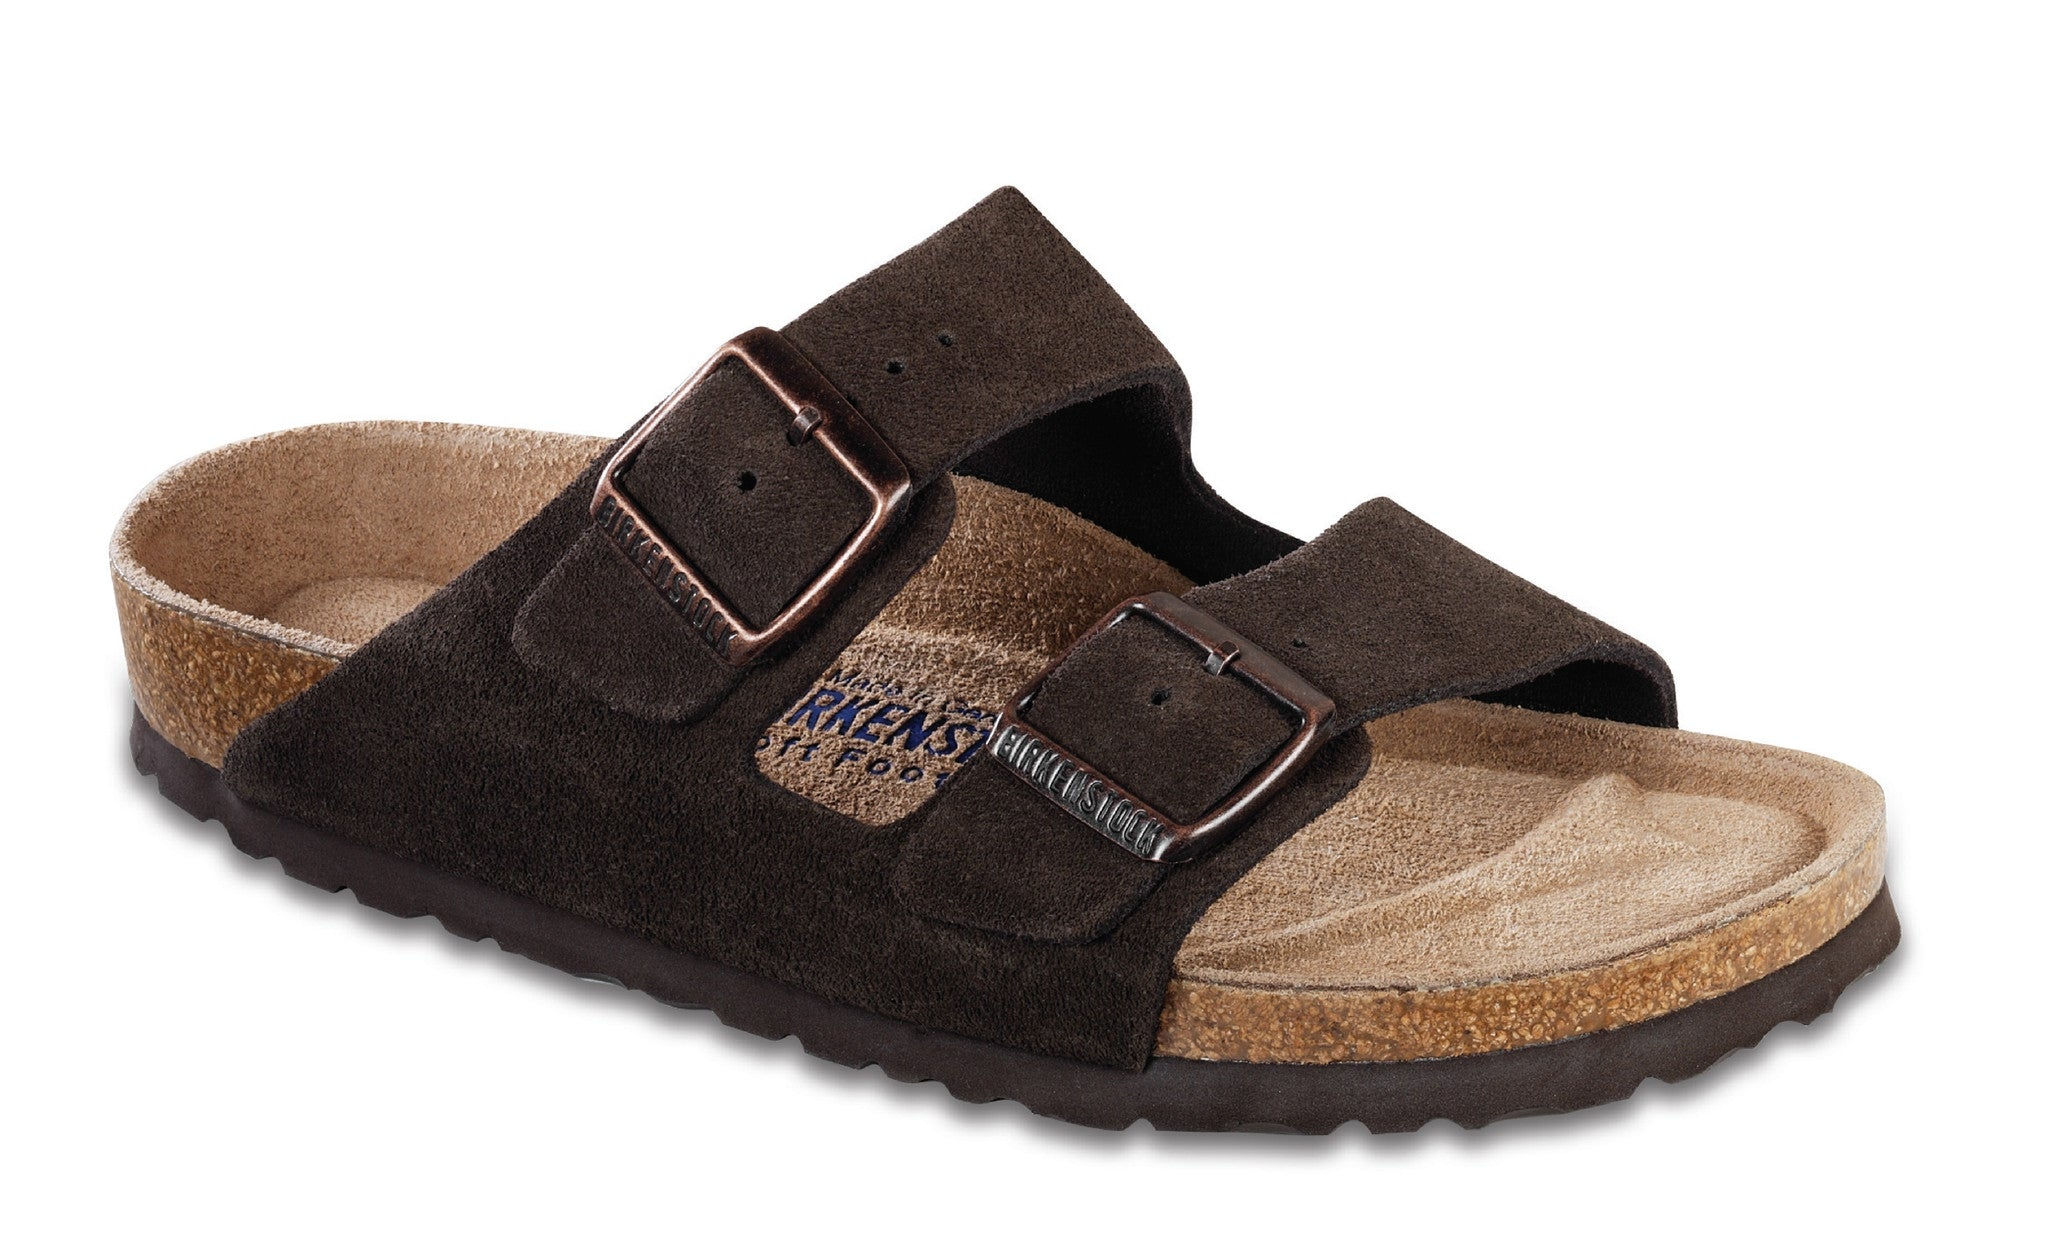 Birkenstock Women's Arizona Mocha Suede Soft Footbed Regular